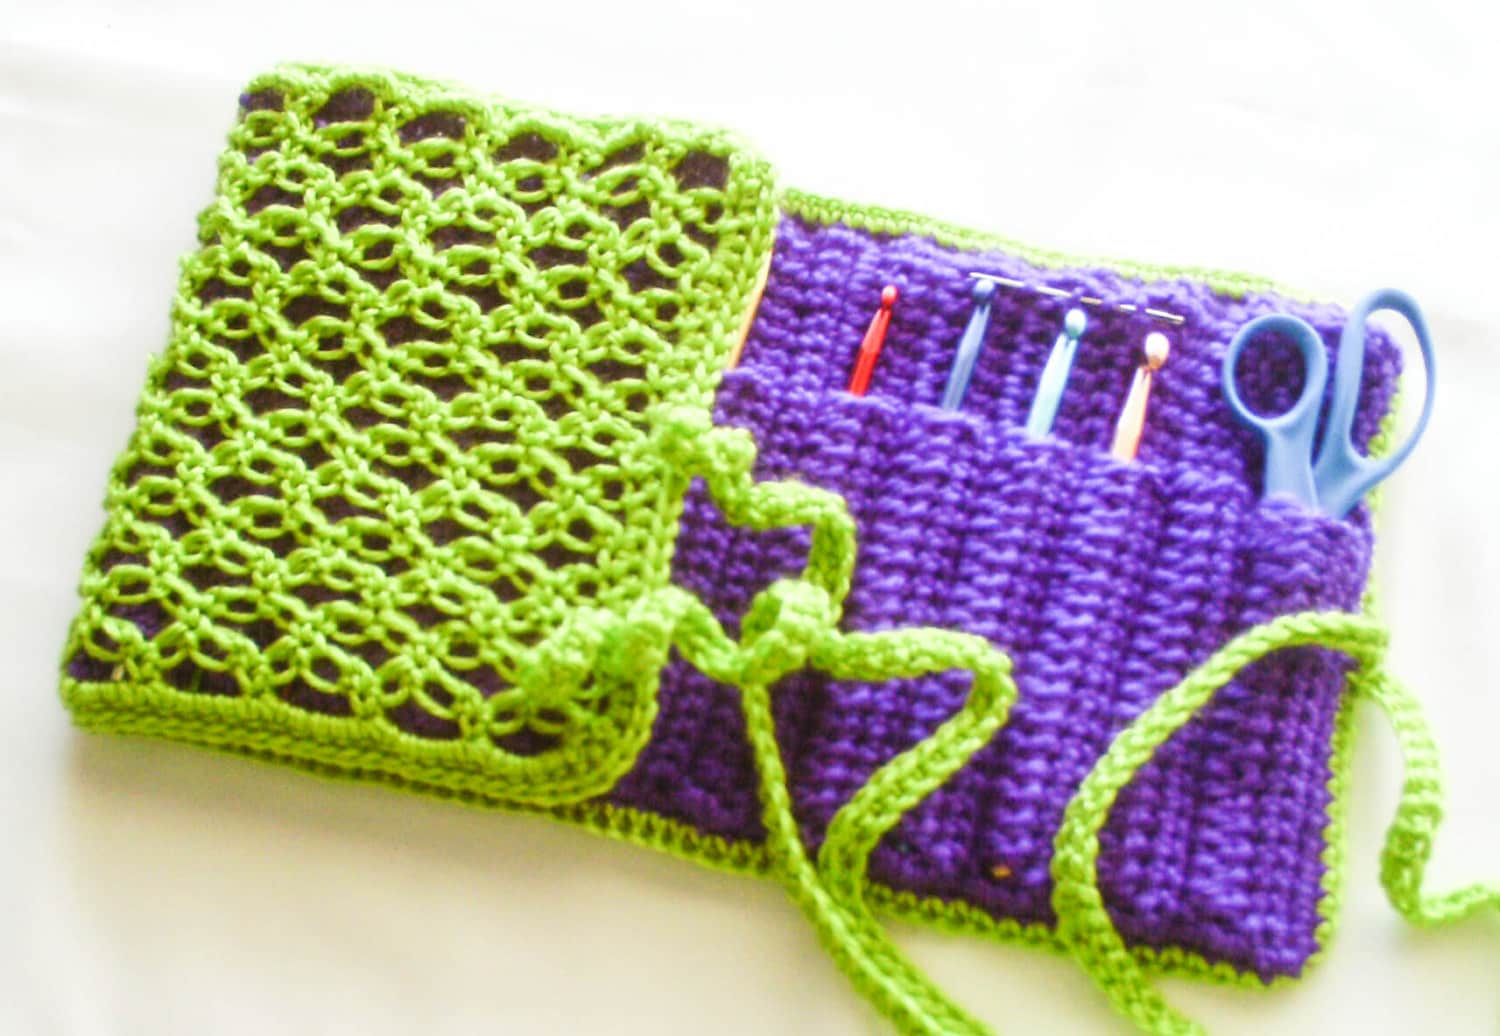 Crochet Hook Organizer Crochet Hooks Available Lime And Etsy